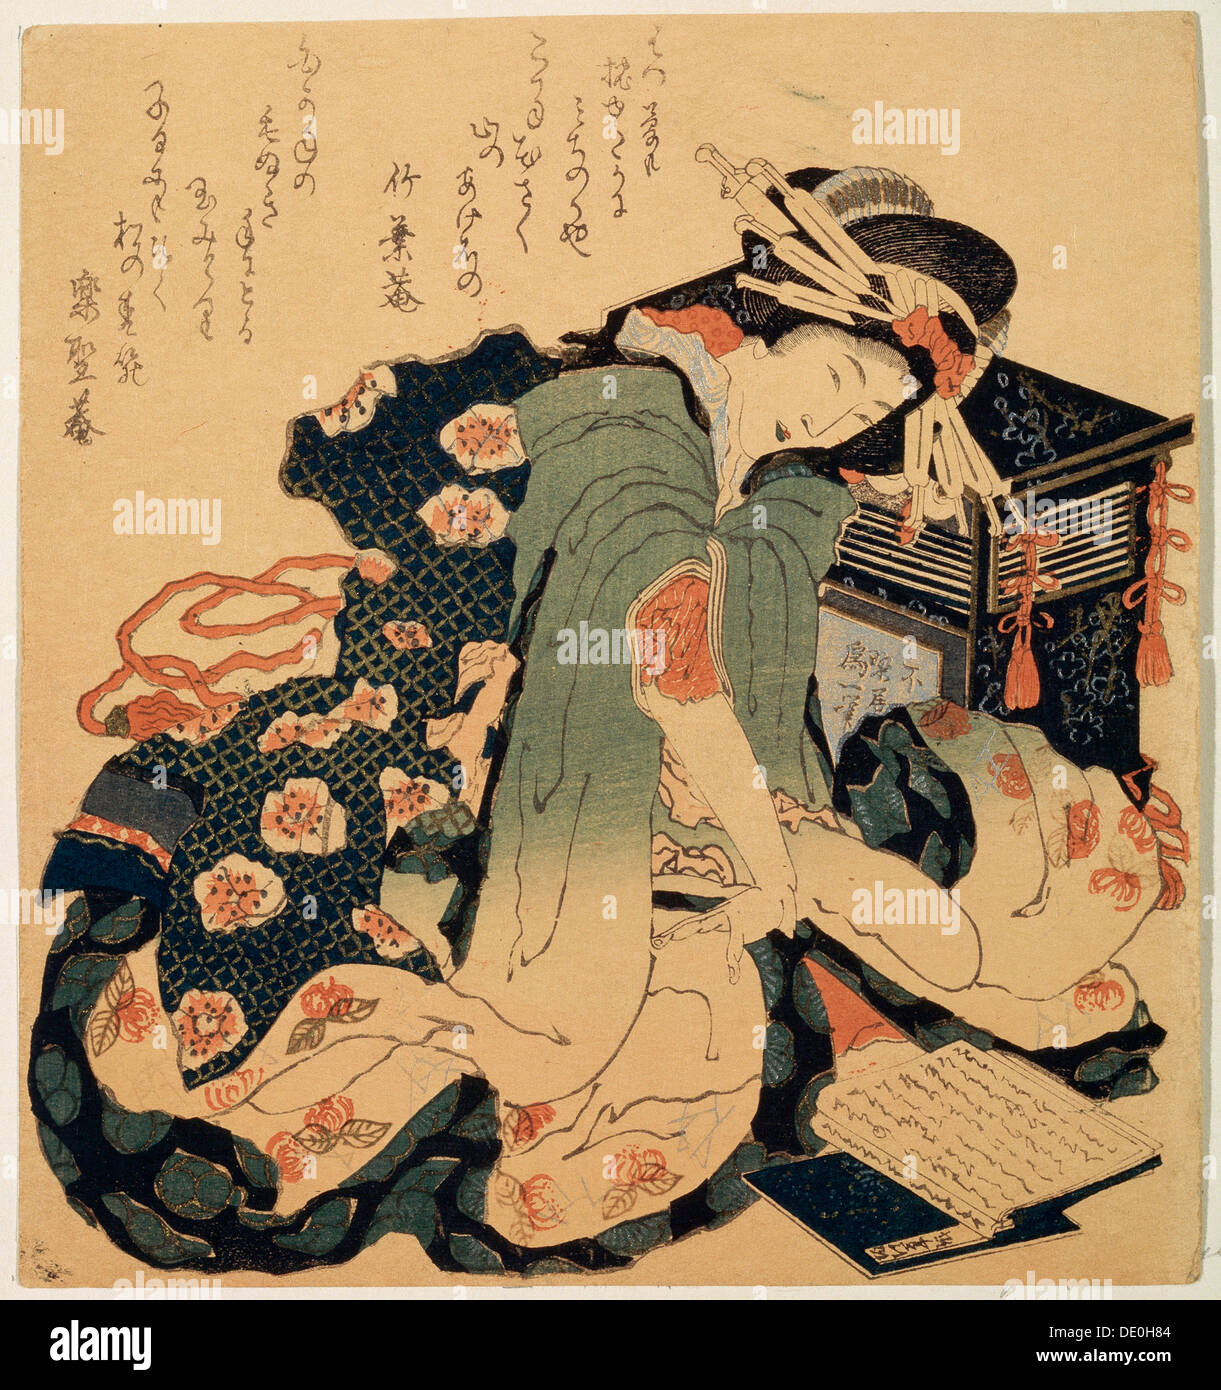 'Reading', c1822.  Artist: Hokusai - Stock Image